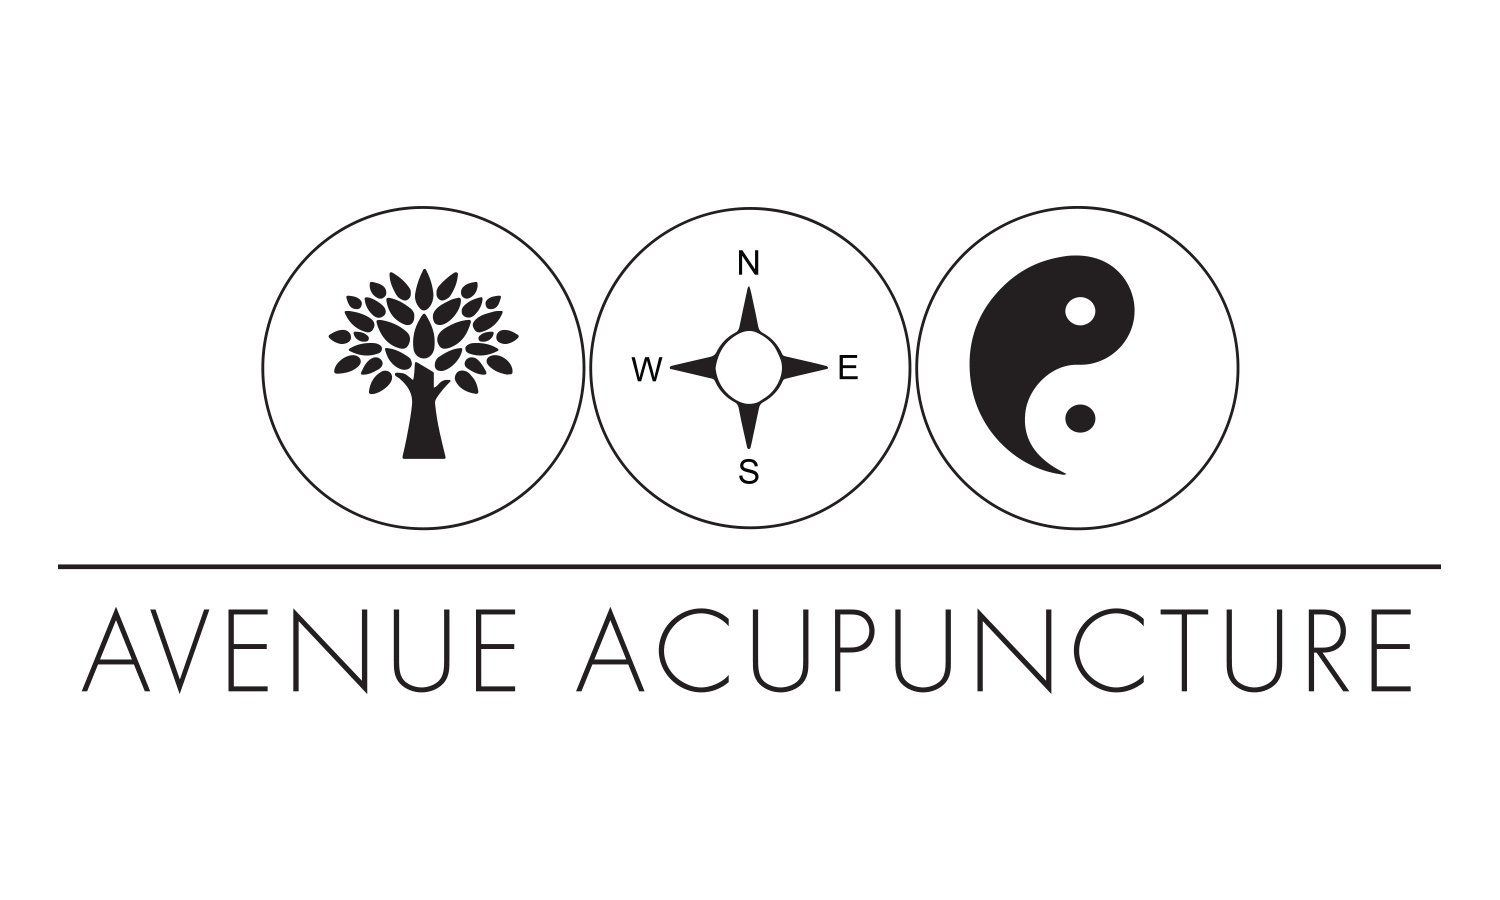 Avenue Acupuncture